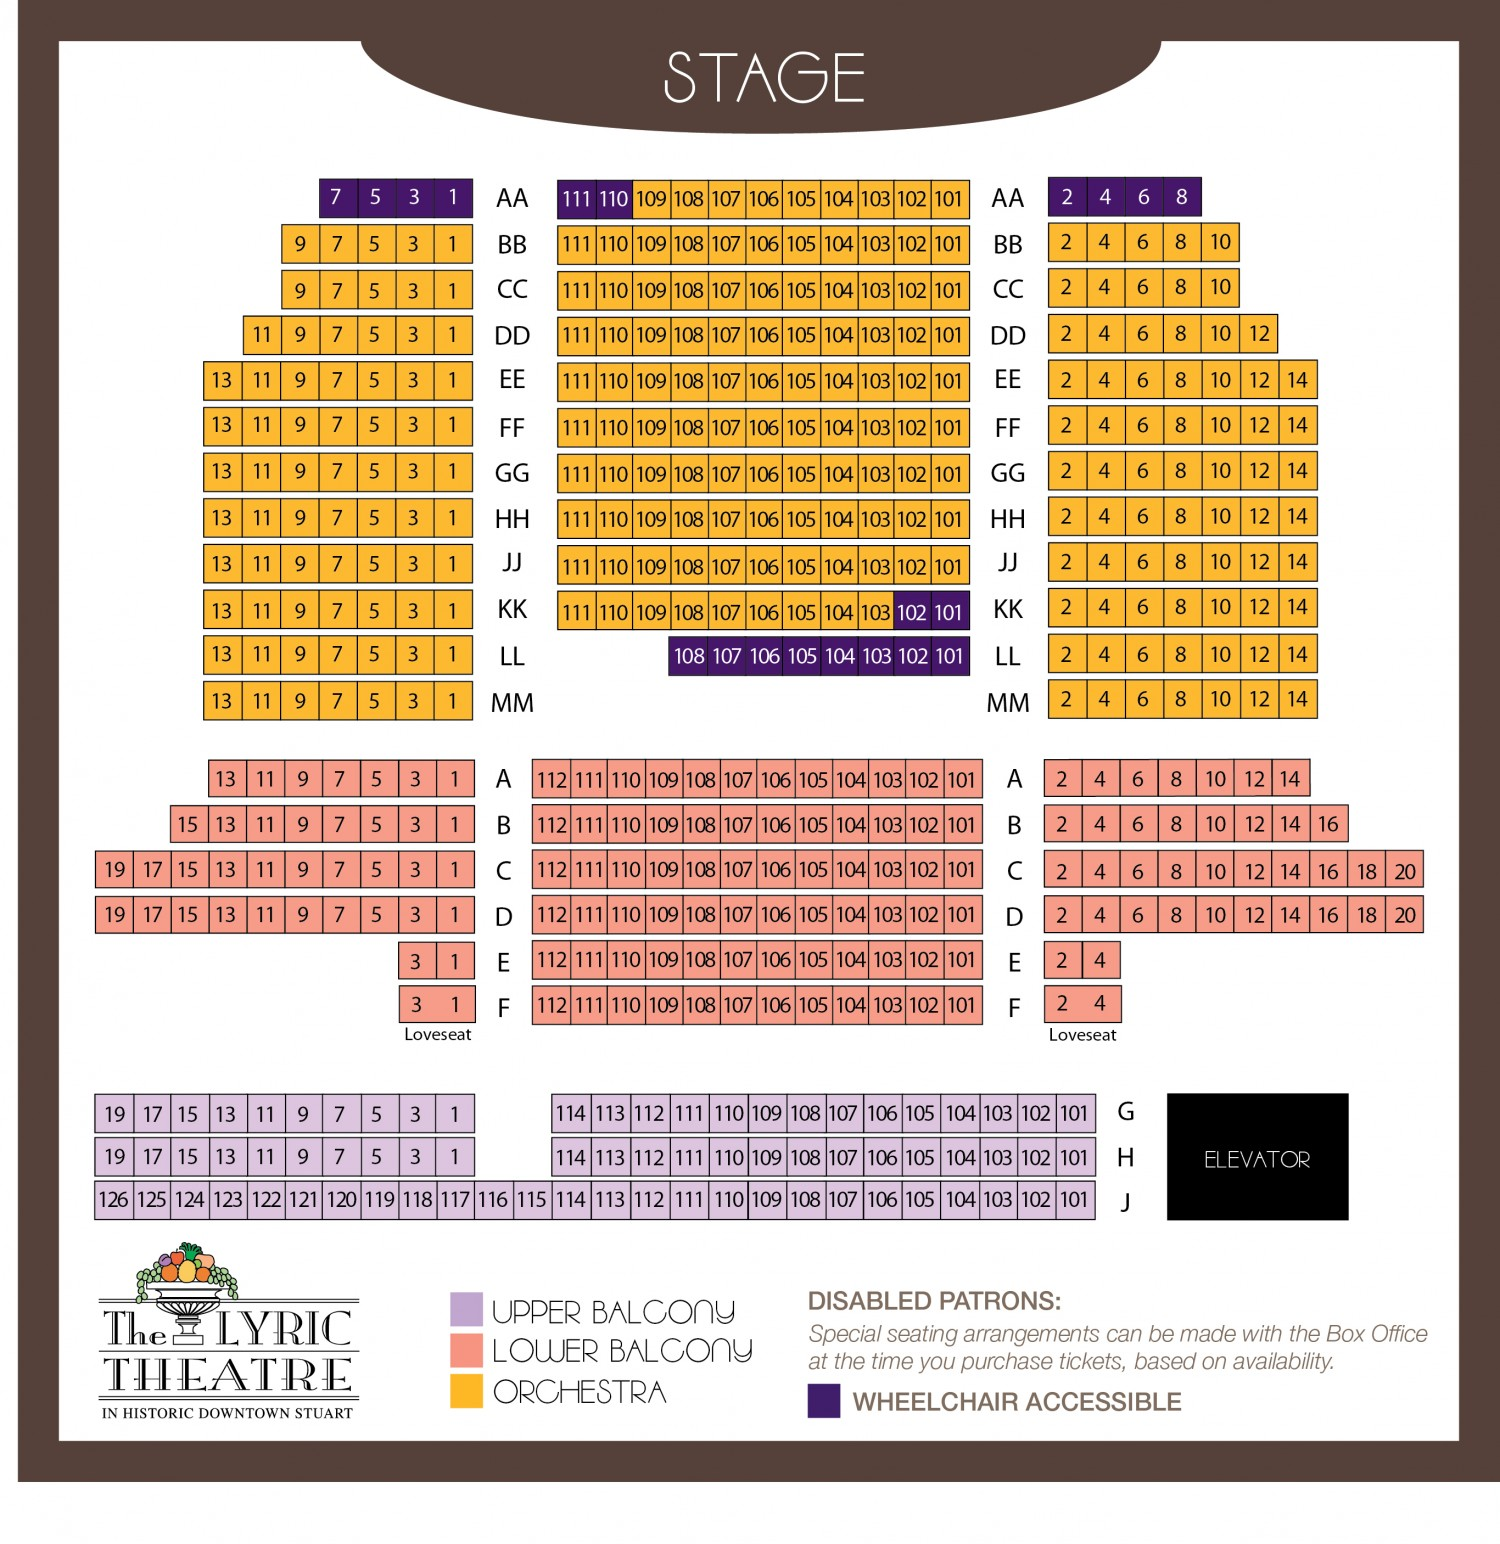 Jupiters Casino Seating Plan